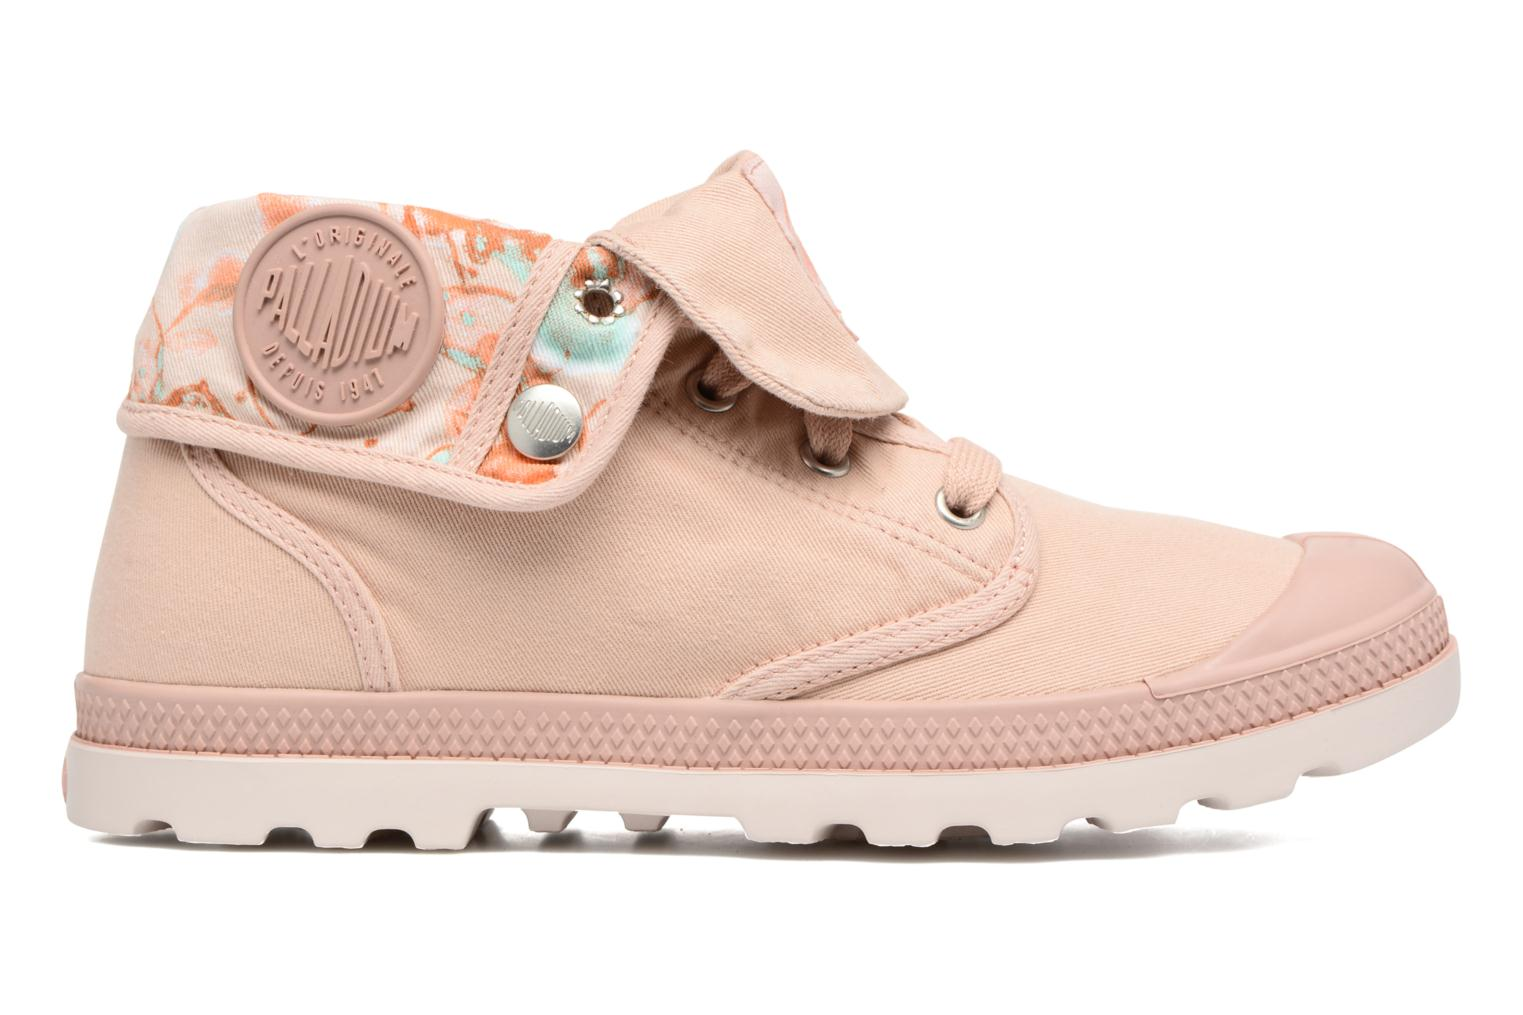 Baskets Palladium Baggy Lp Tw P F Rose vue derrière